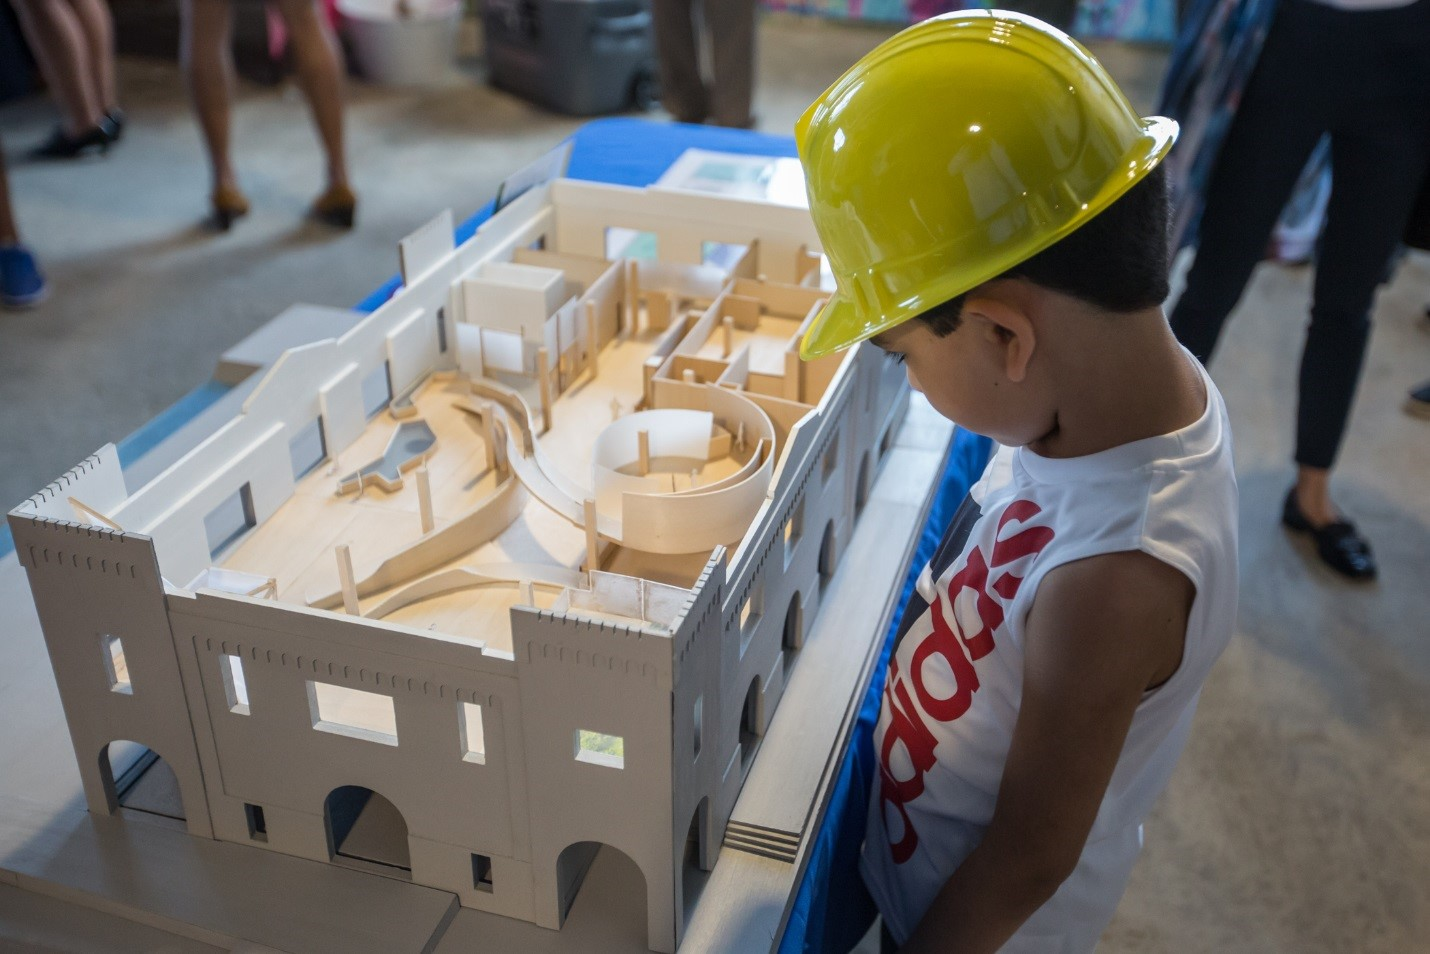 A kid at the groundbreaking ceremony